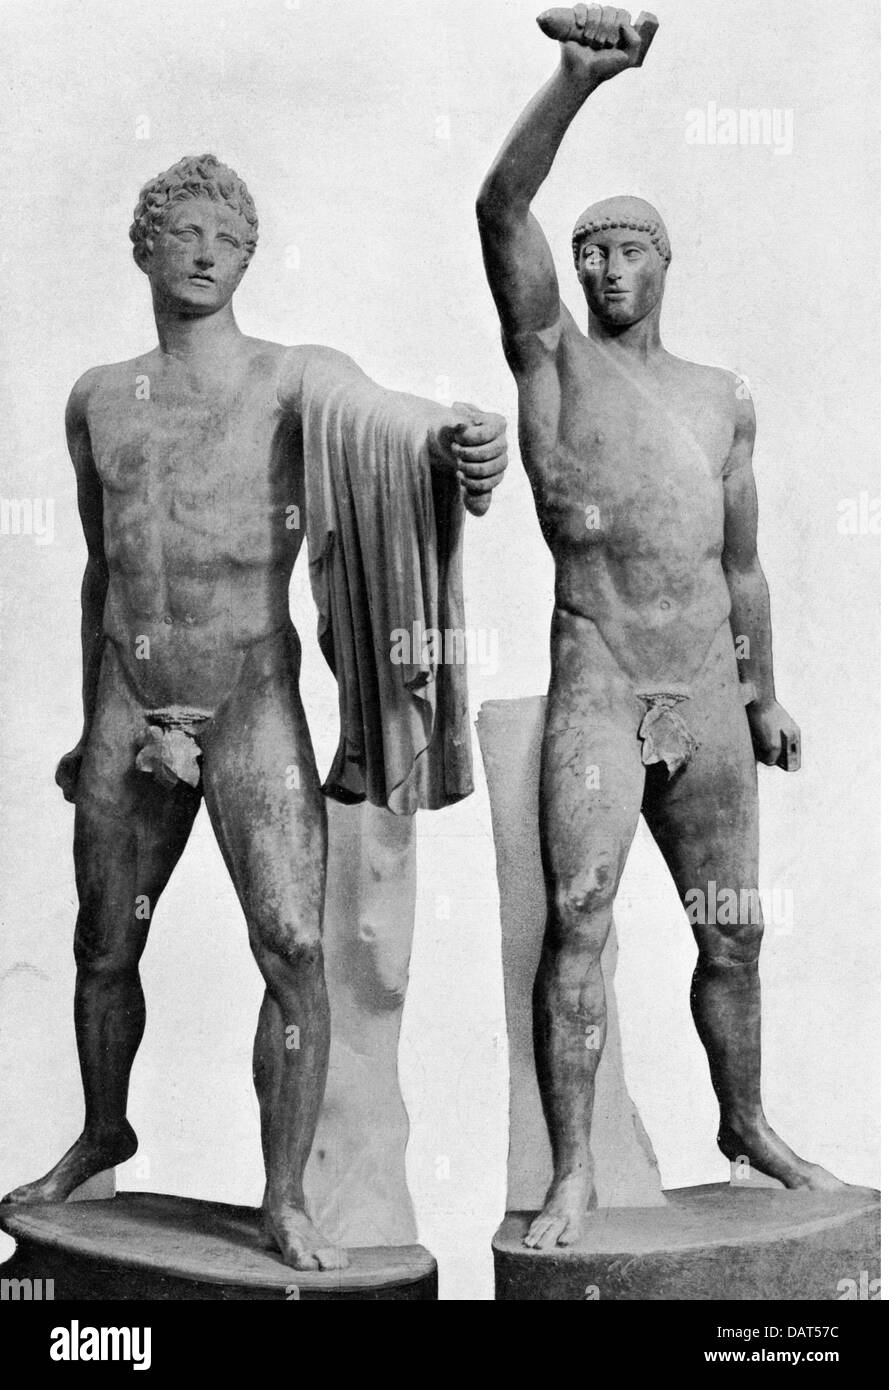 Harmodios and Aristogeiton, tyrannicides from Athens, killed the tyrant Hipparchus, statues, circa 480 BC, Ancient - Stock Image